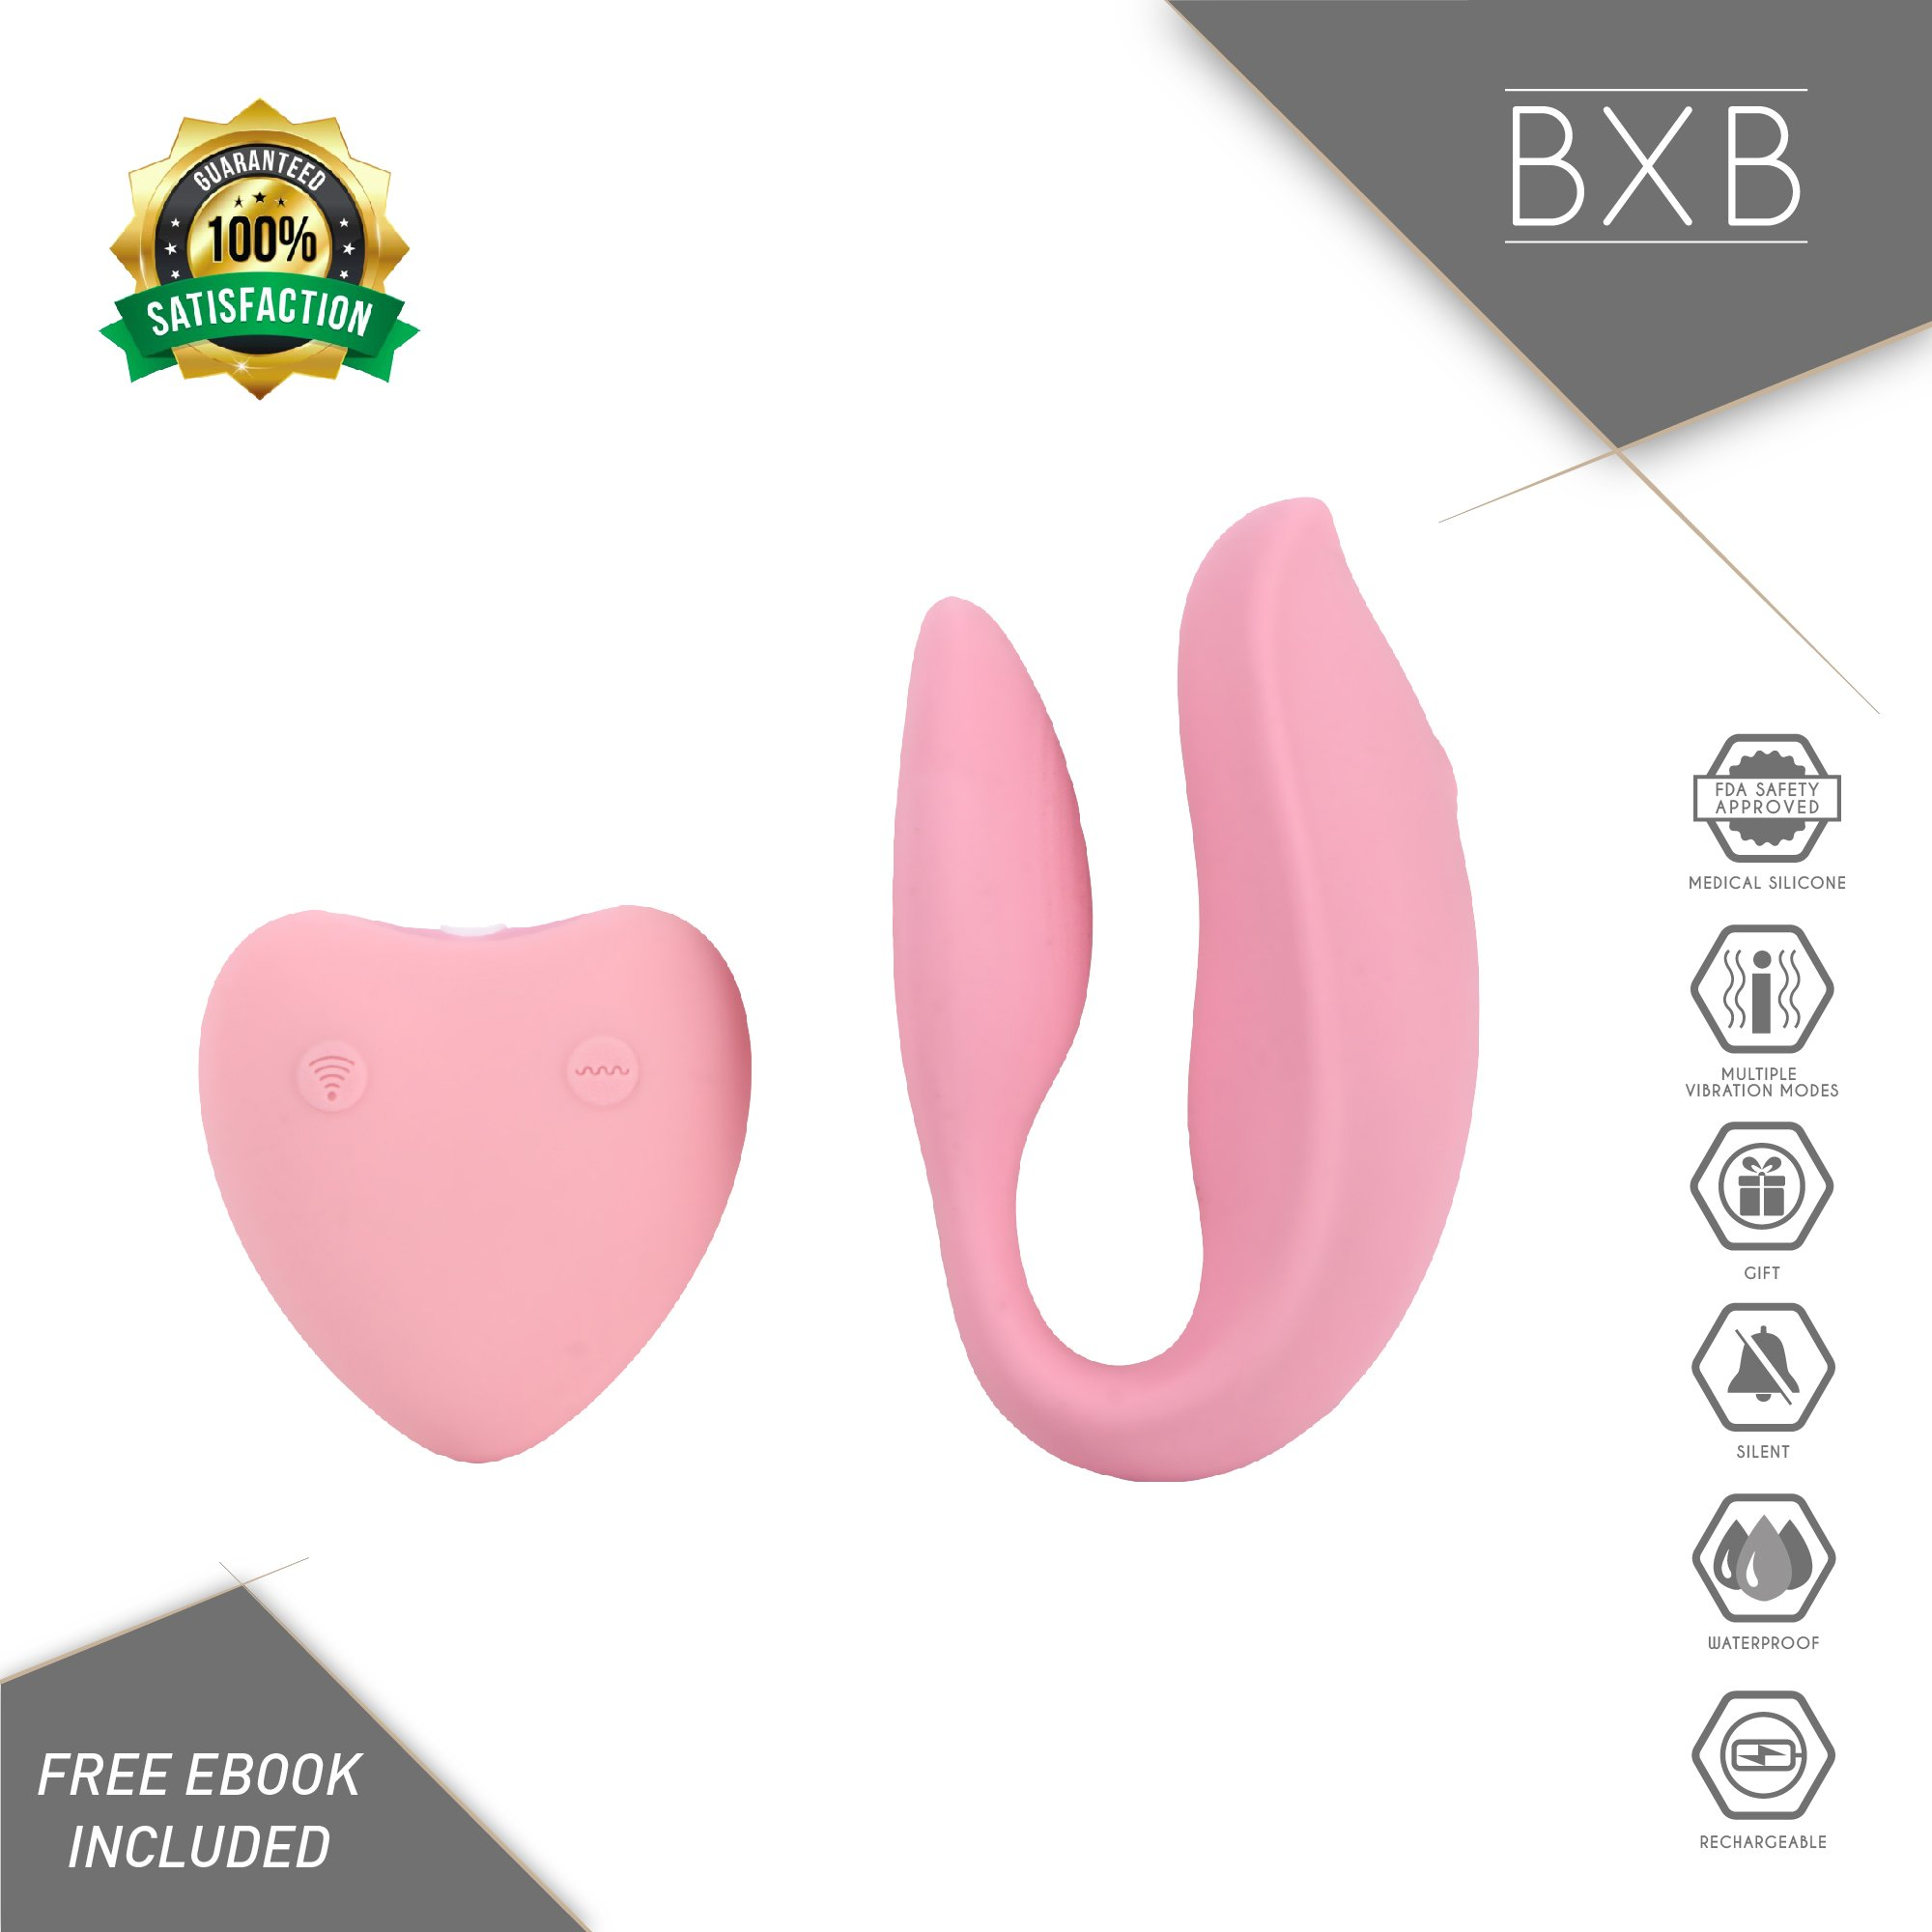 Luxury Mini Massager by BXB | Powerful | Cordless | Compact | Therapeutic | Recovery | Muscle Aches | Travel Gift | Hypoallergenic | Silicone | USB | Wireless | Stress Away